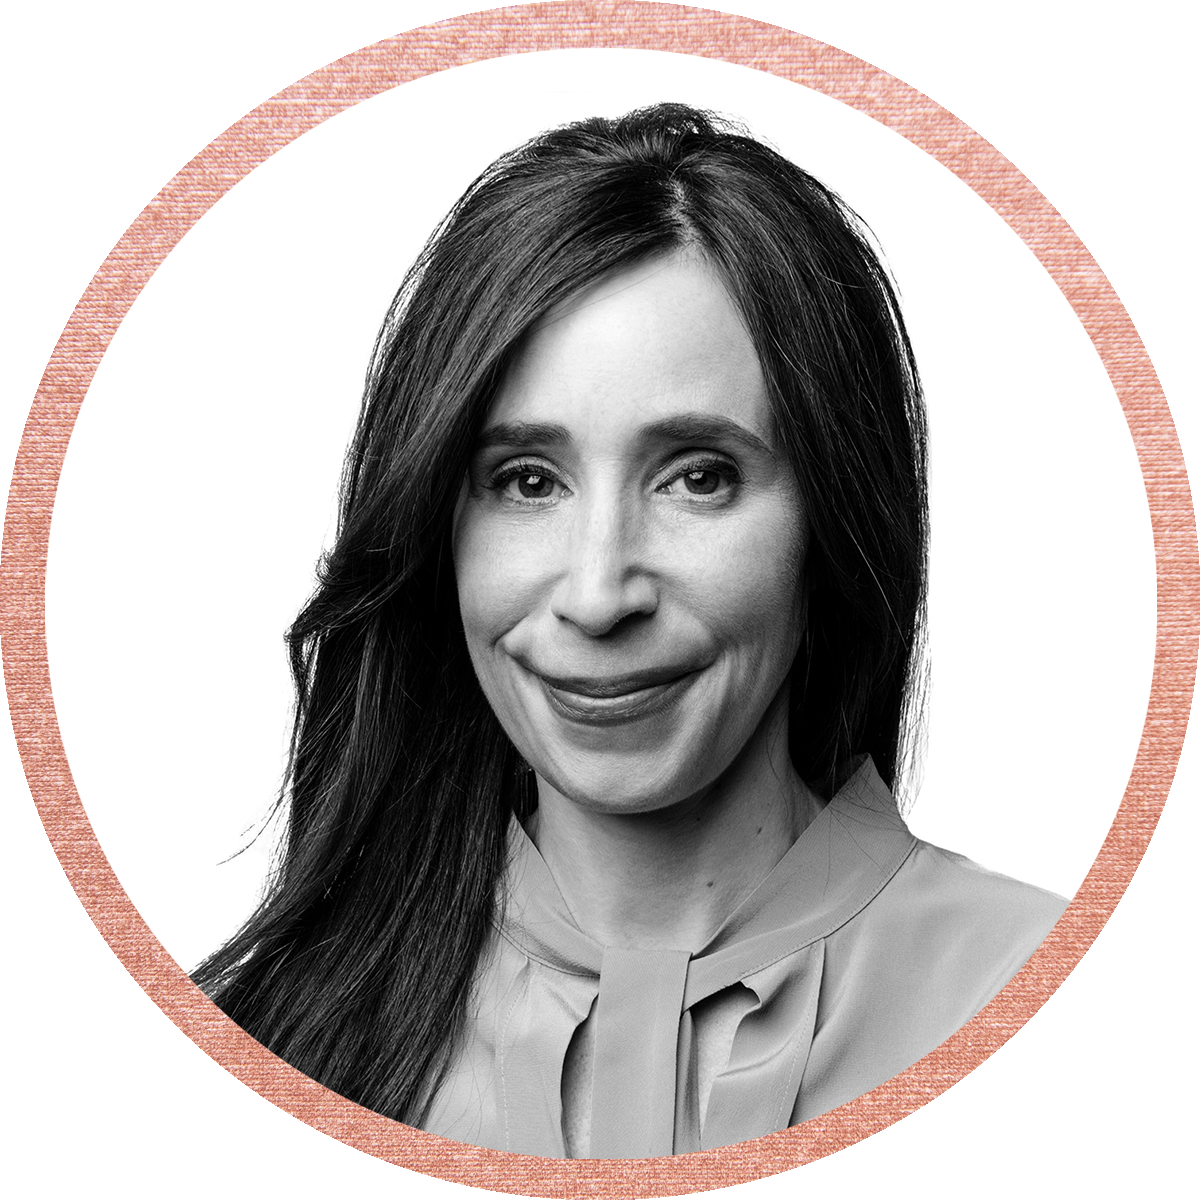 MEREDITH KOPIT LEVIEN | THE NEW YORK TIMES